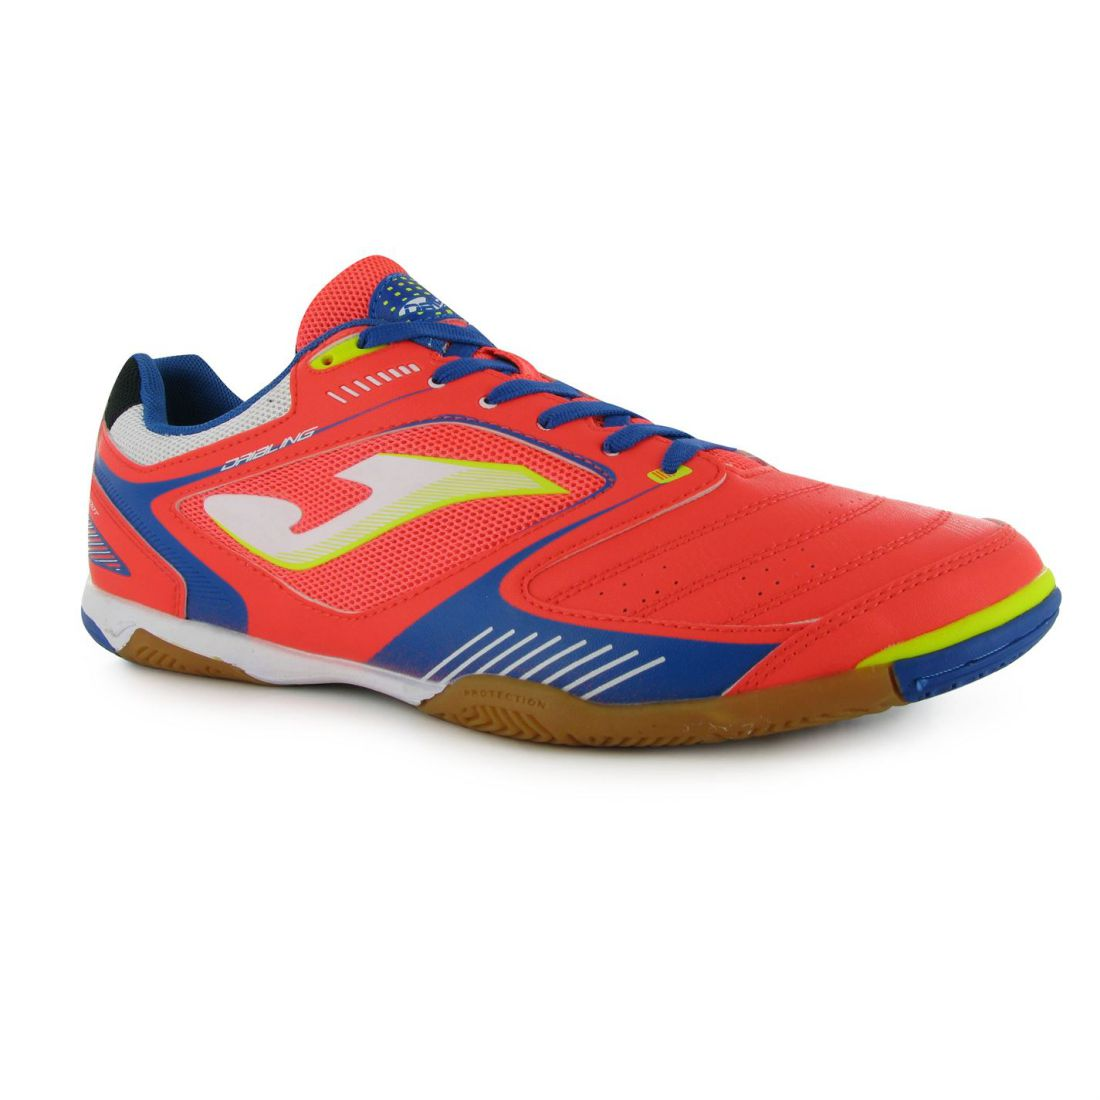 f904ed48d45 Details about Joma Mens Dribbling Indoor Football Boots Trainers Sports  Shoes Sneakers